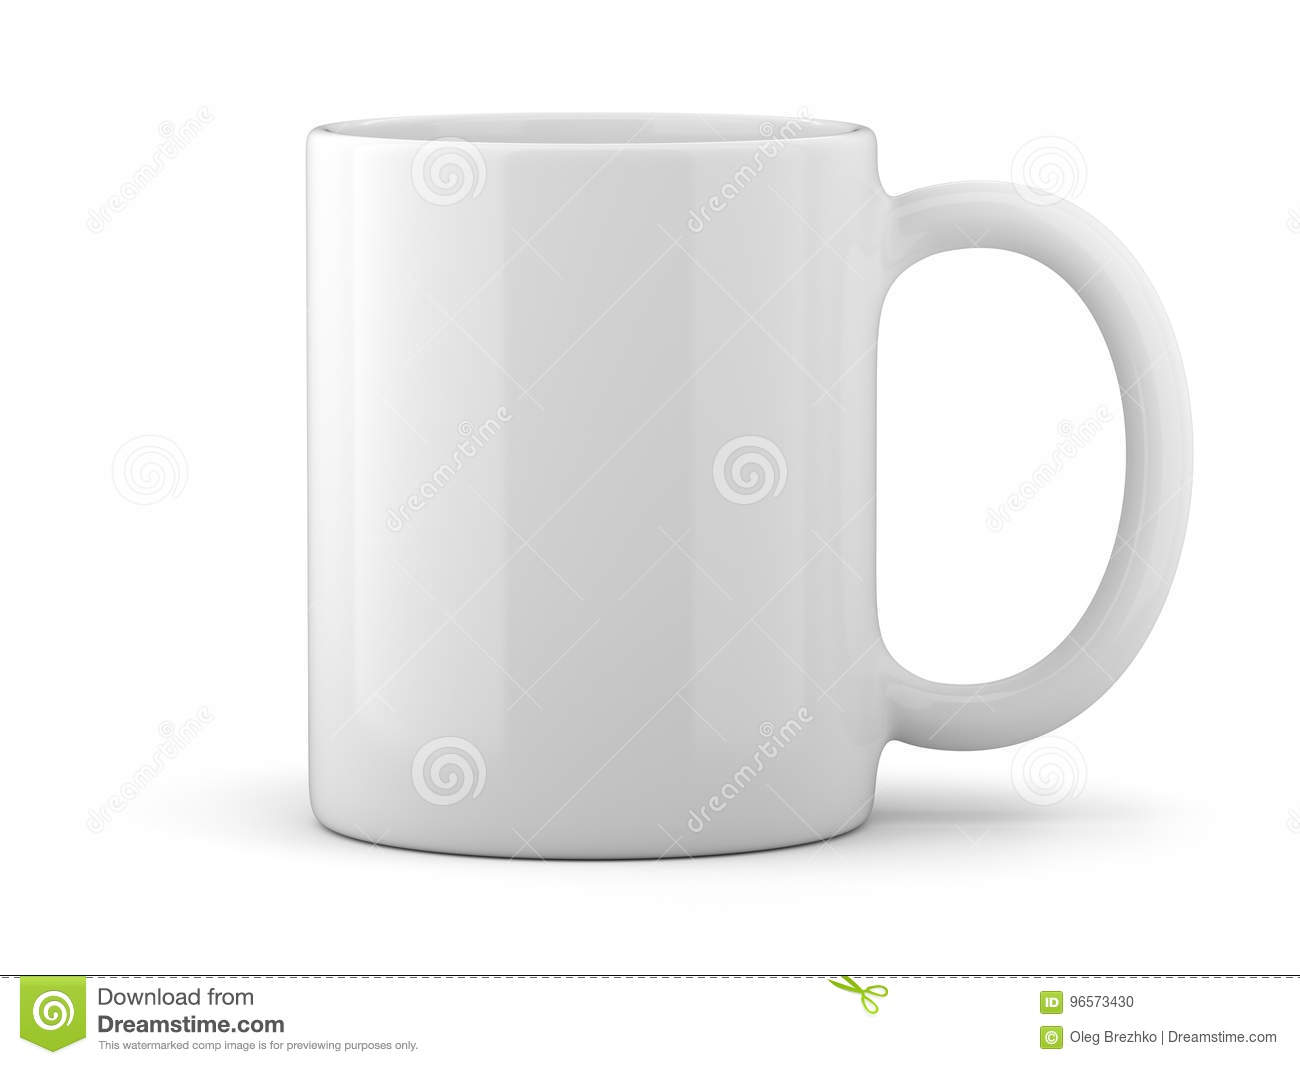 Tasse blanche d isolement